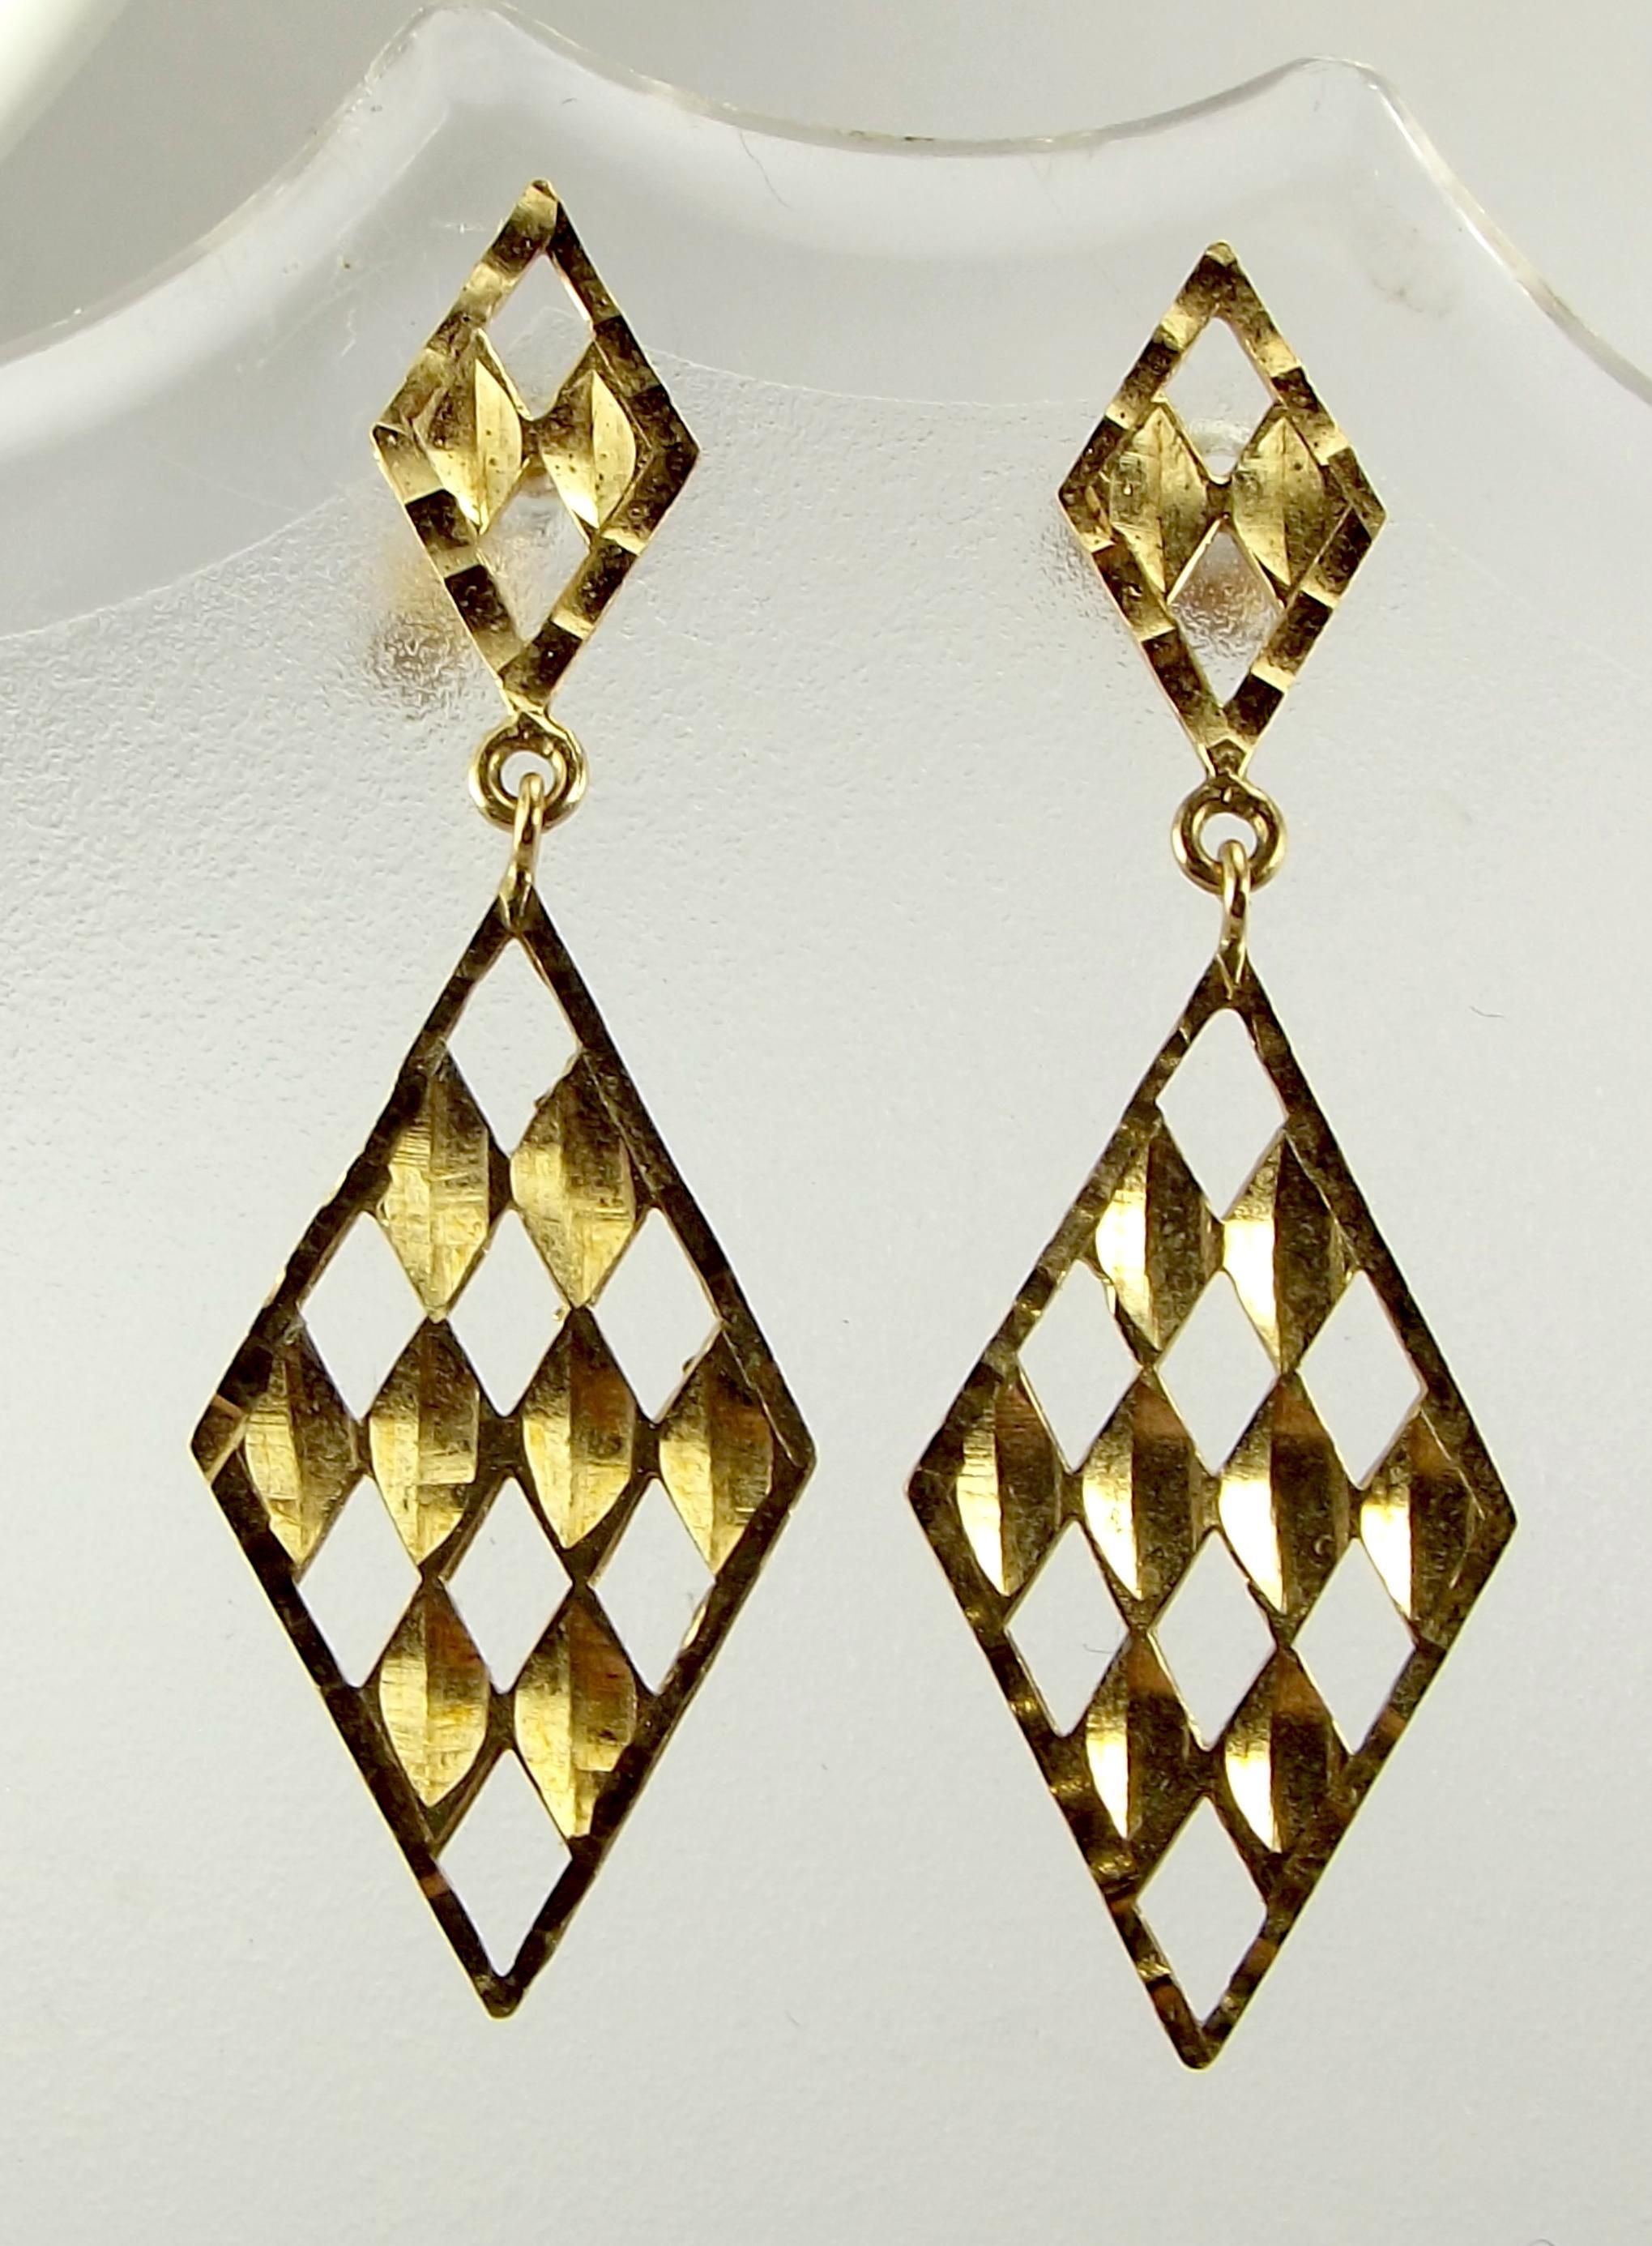 Vintage 9ct Gold Diamond Shaped EARRINGS Diamond Faceted